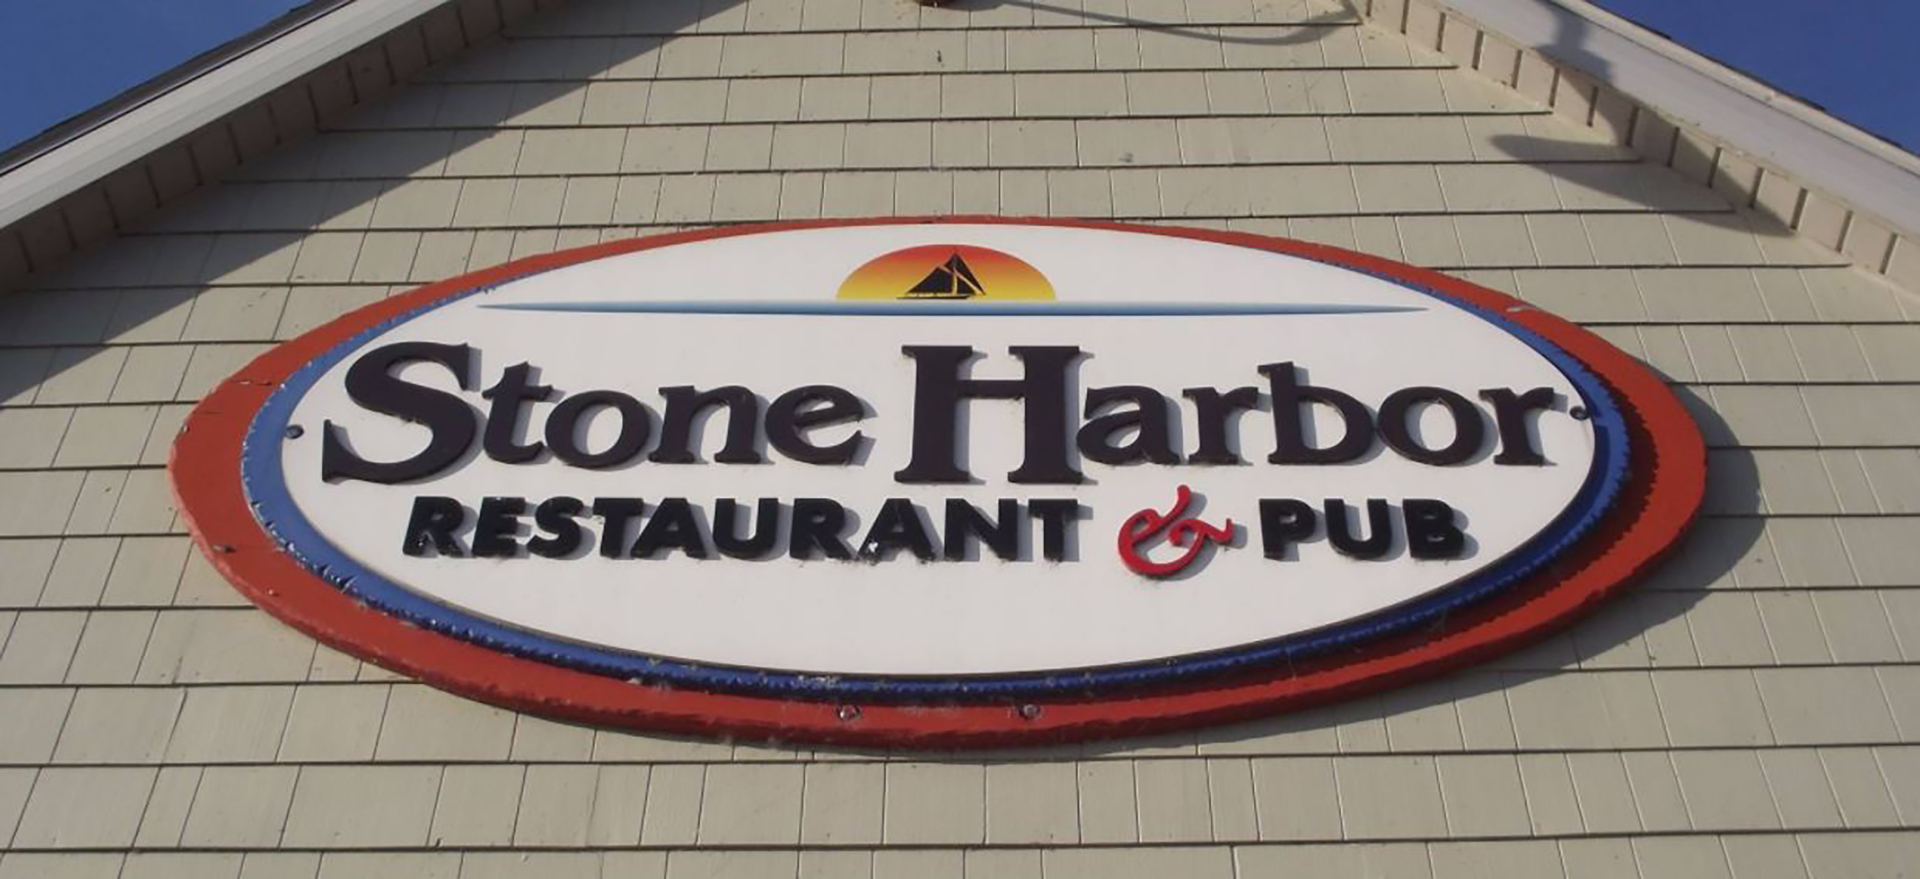 Stone Harbor Restaurant & Pub (1)